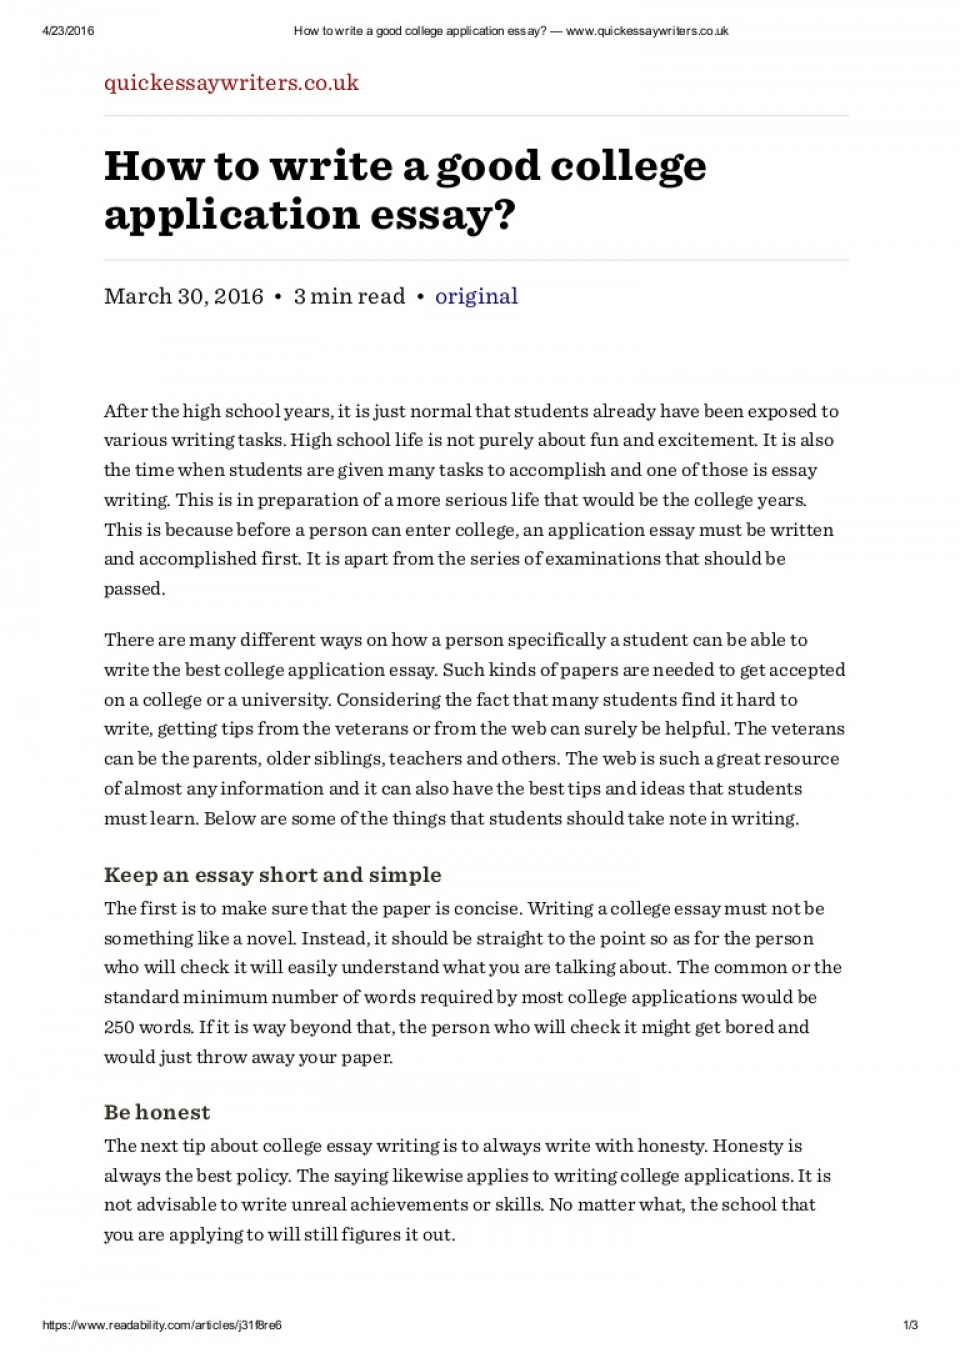 009 Howtowriteagoodcollegeapplicationessaywww Thumbnail Essay Example Writing College Rare A Application How To Write Term Paper Outline Topics On Examples 960